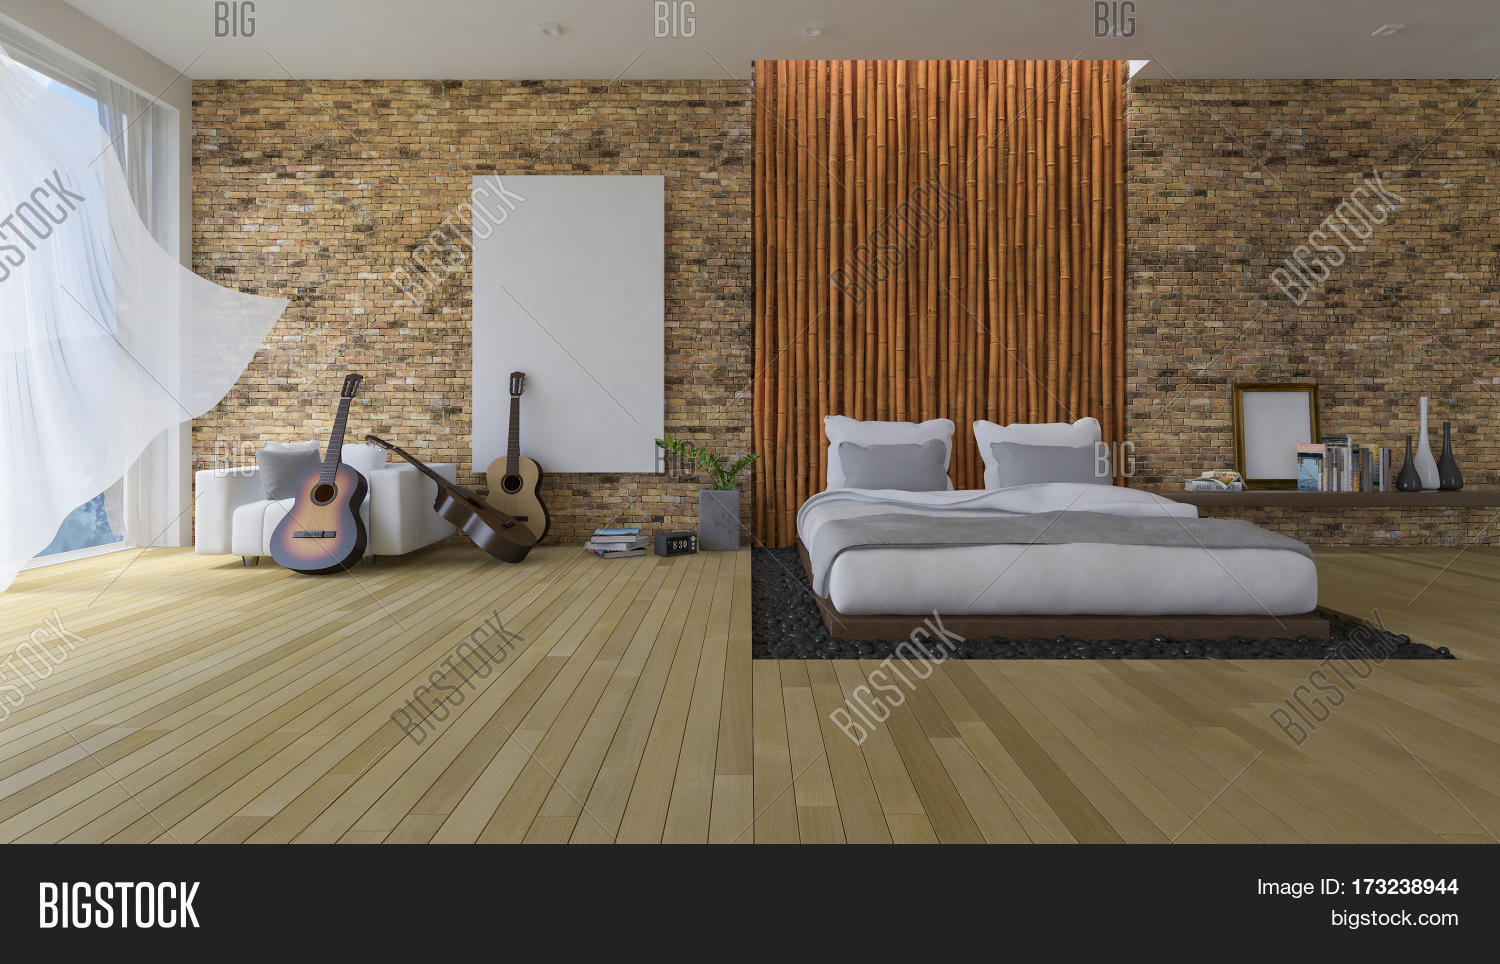 3ds Bed Bamboo Wall Image Photo Free Trial Bigstock